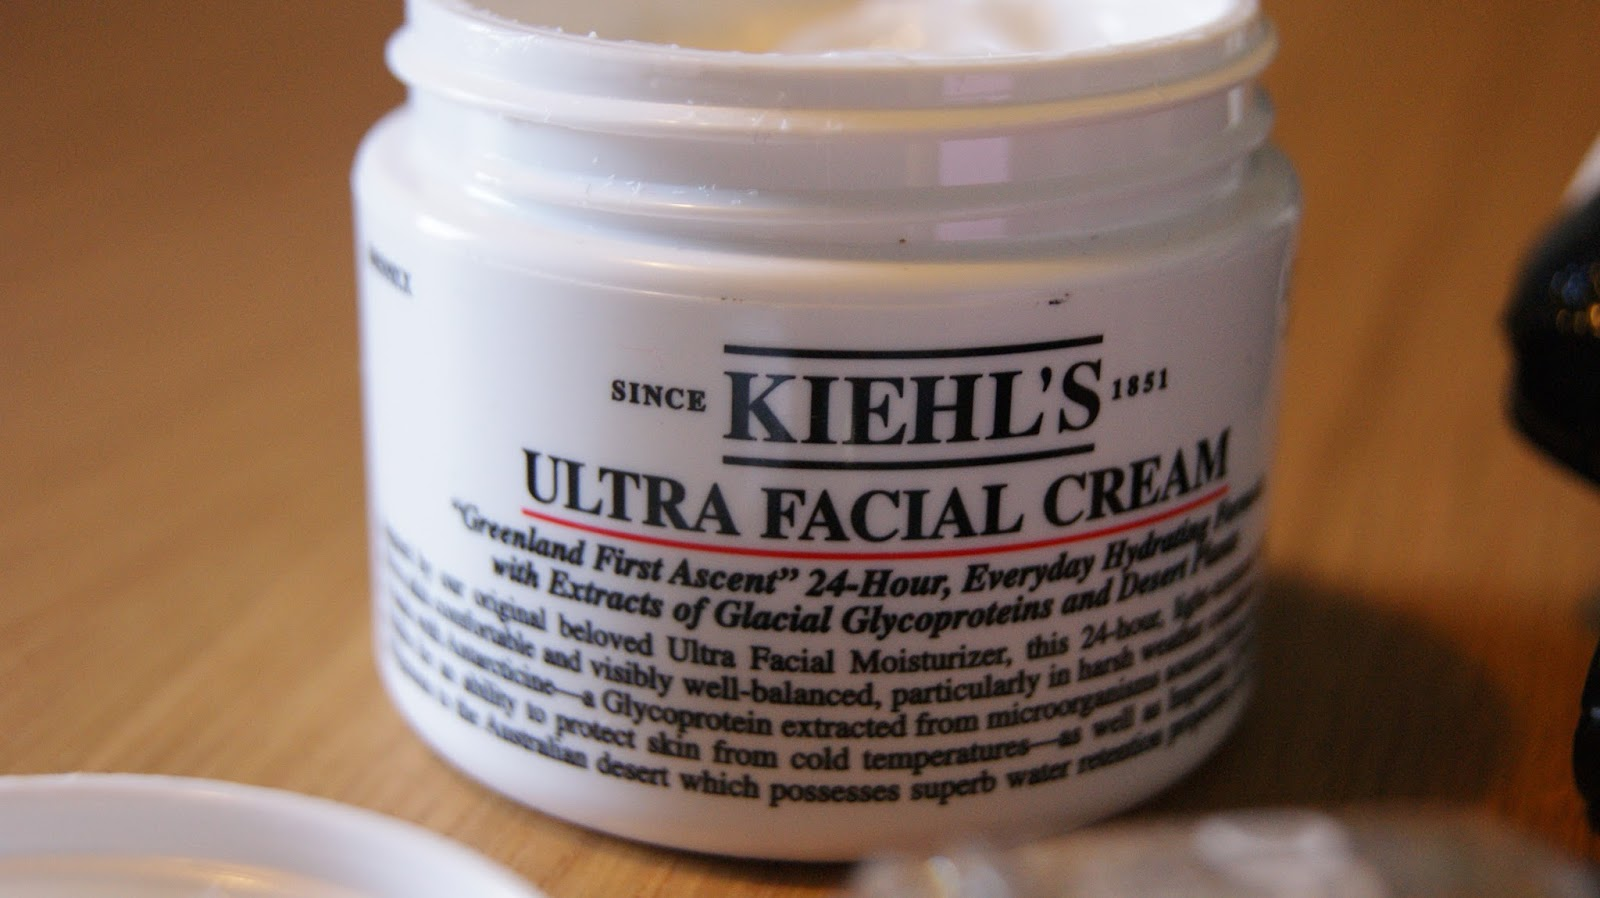 Kiehls Ultra Facial Cream Review